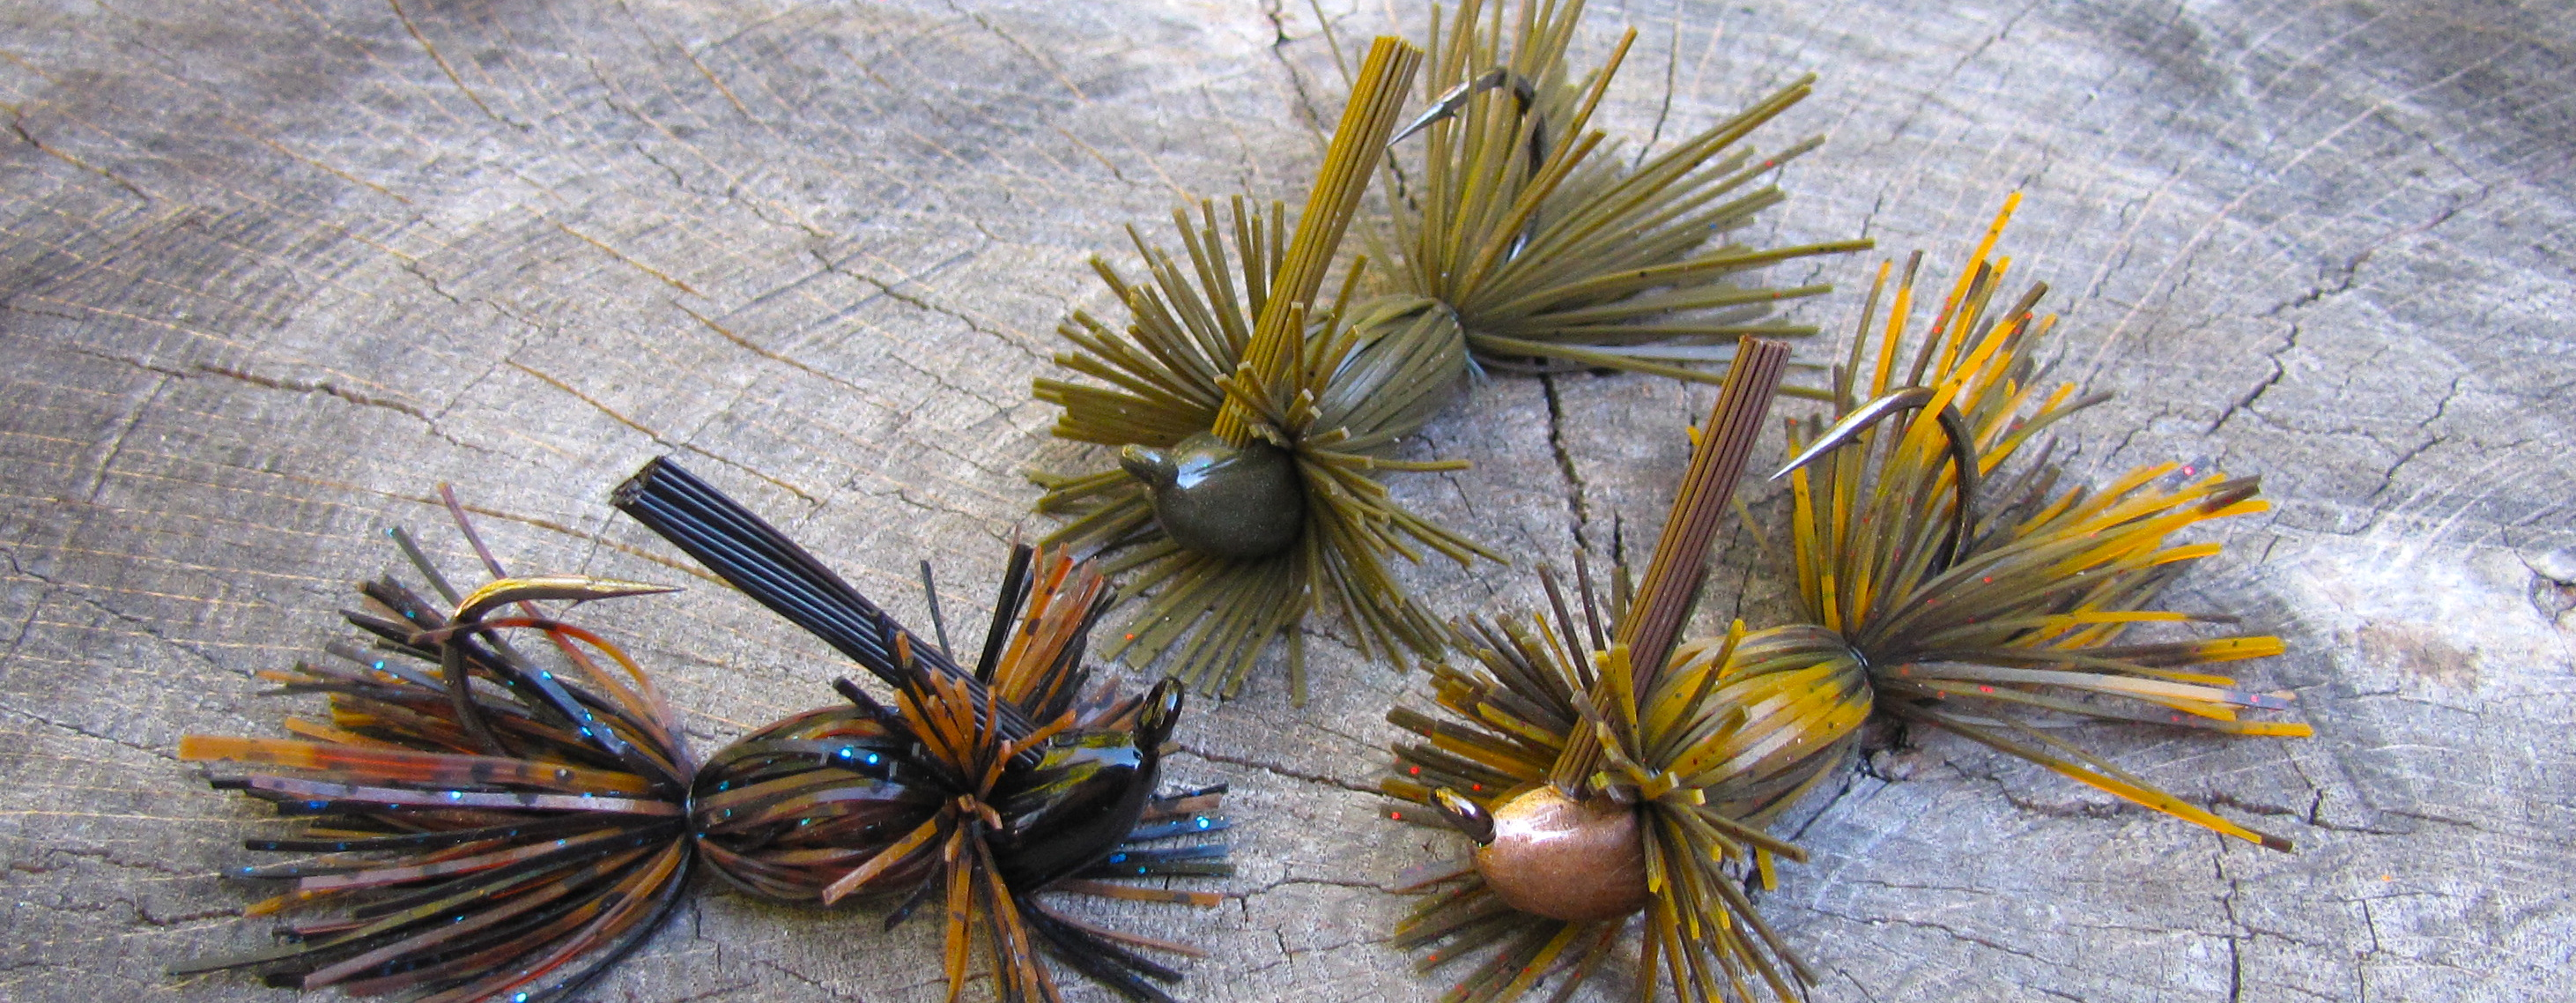 Fishing Frugal Lures Micro Finesse Jigs